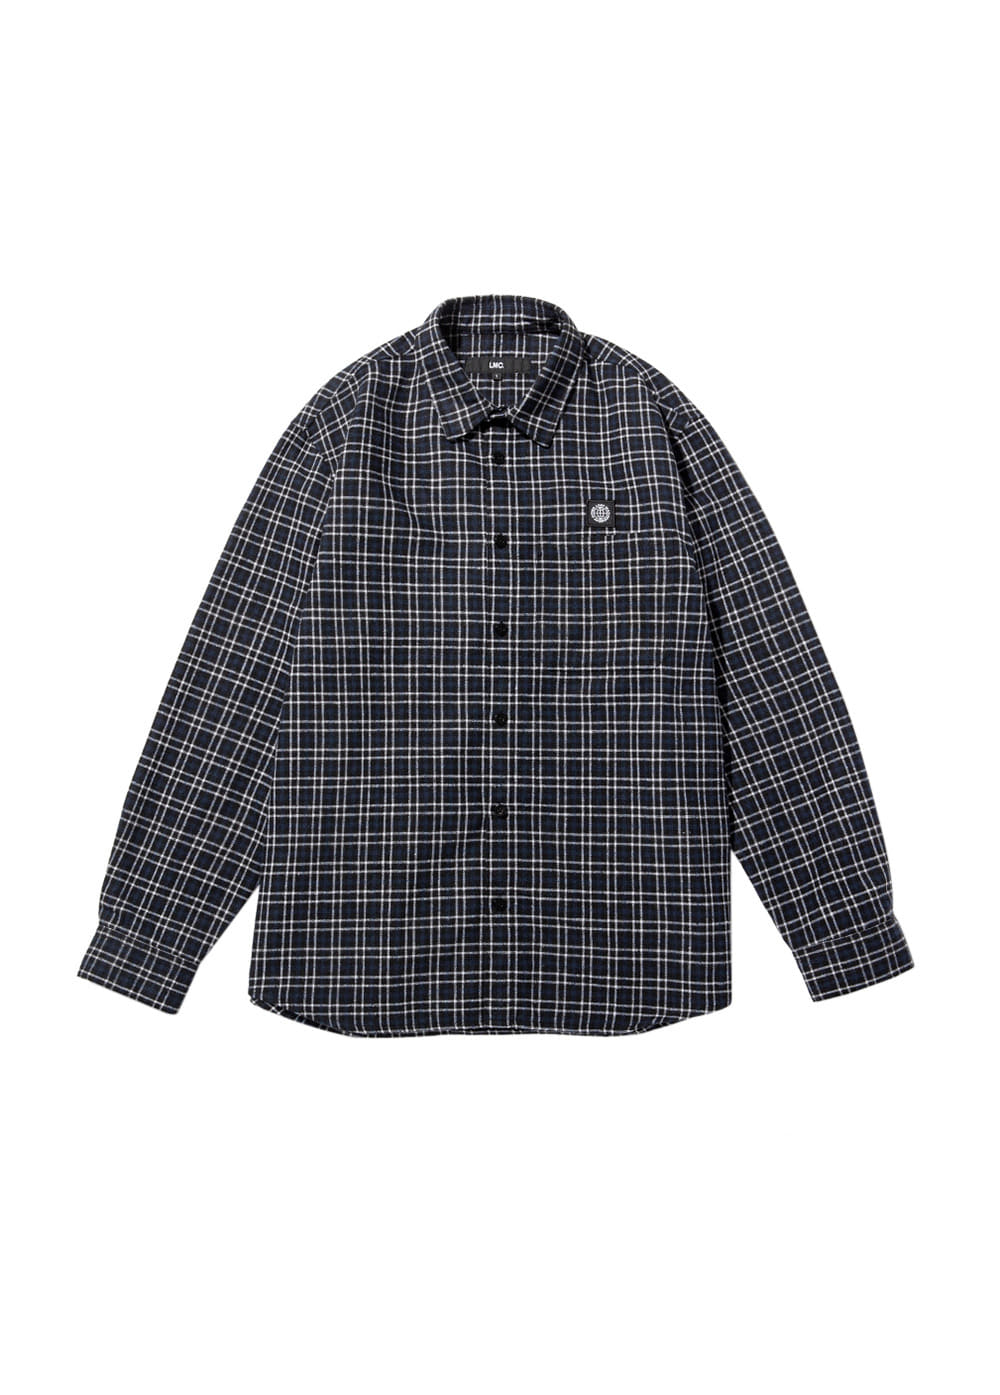 LMC FN PLAID SHIRT black